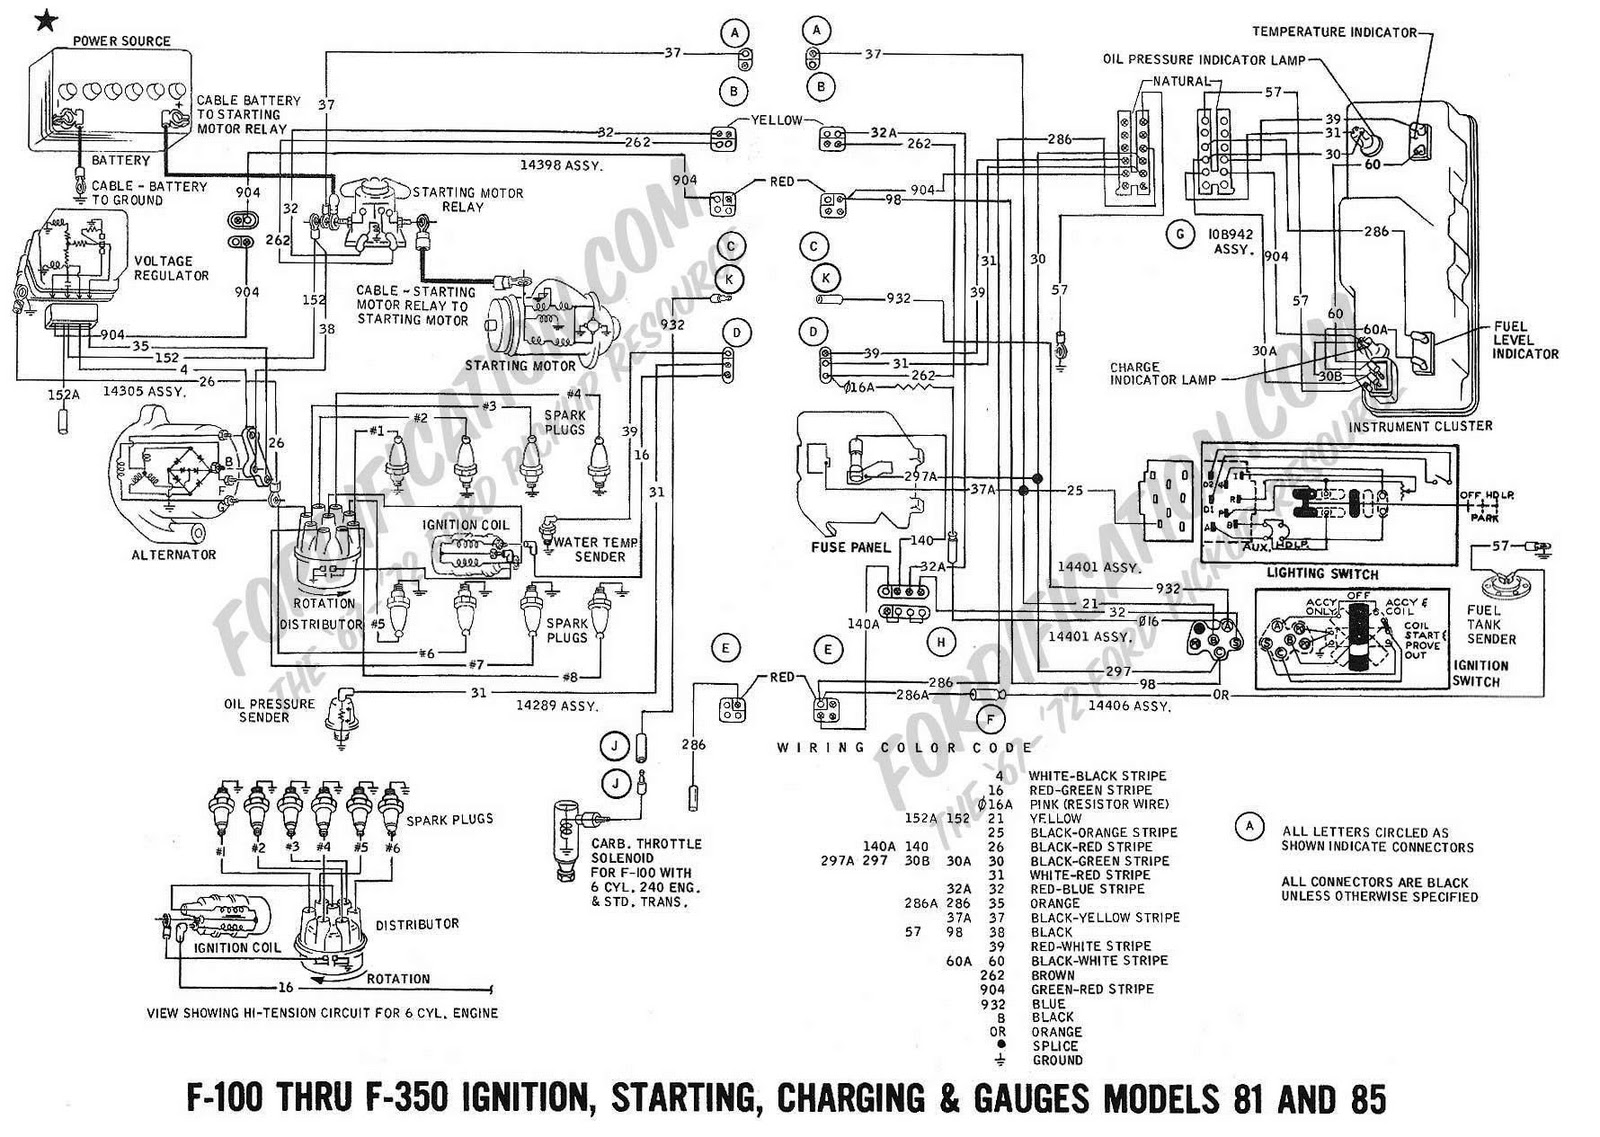 1970 Ford F600 Wiring Diagram Car Fuse Box Cost Plymouth Cukk Jeanjaures37 Fr